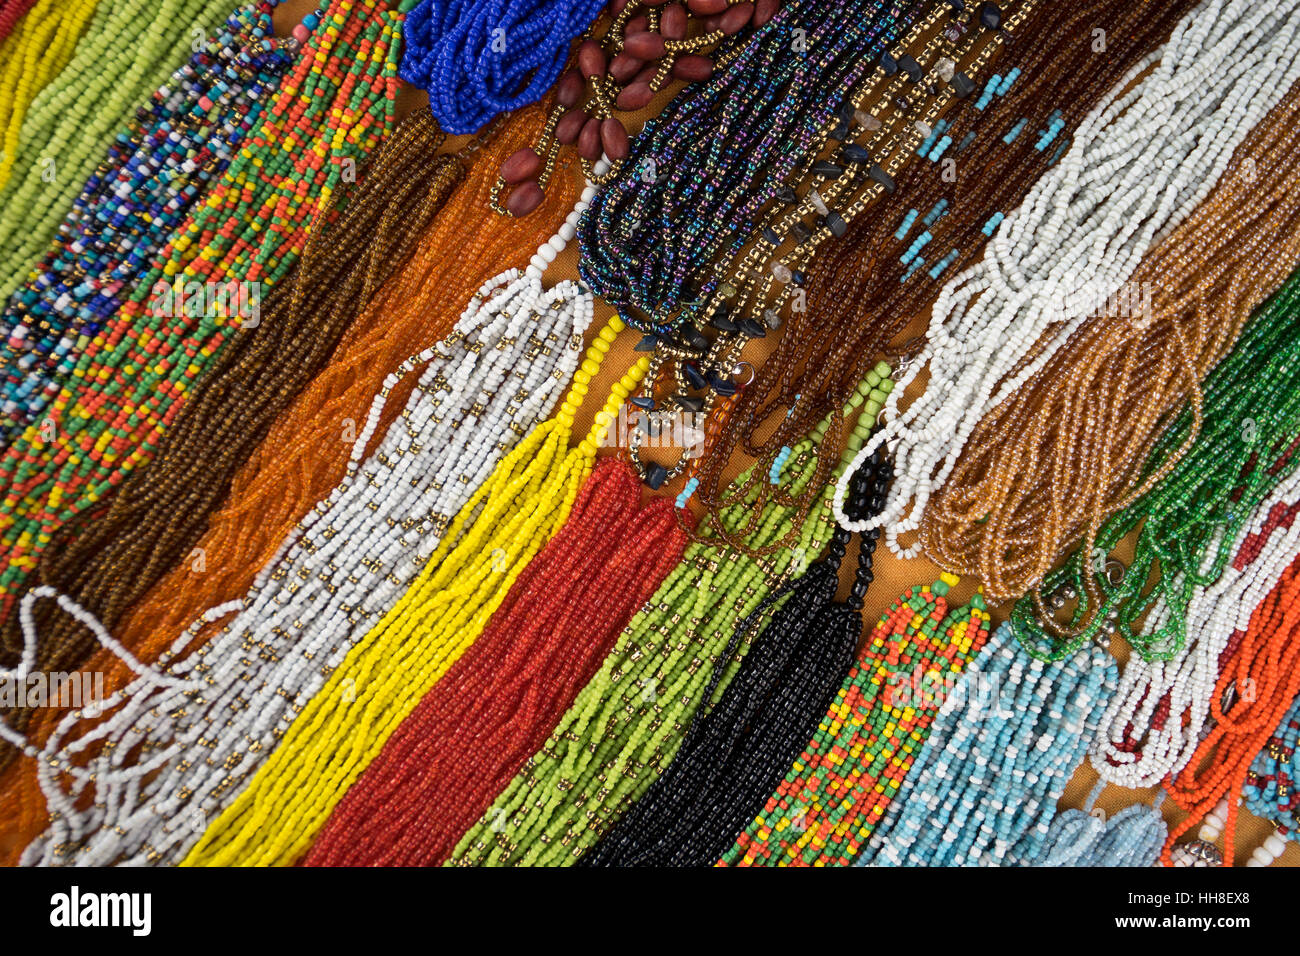 closeup of colorful beaded necklaces Ecuadorian market in Otavalo - Stock Image